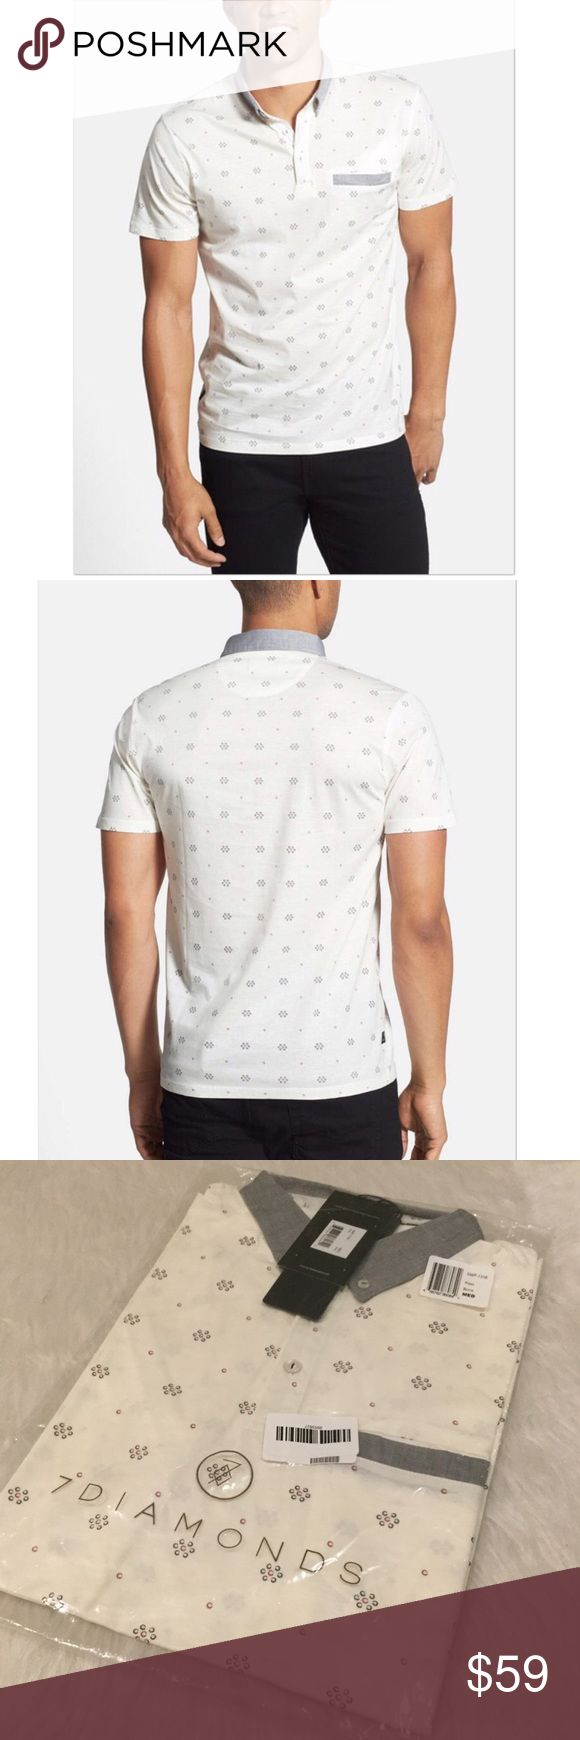 """NWT 7 Diamonds Prism Print Mercerized Polo A chambray button-down collar and welt-trimmed chest pocket top a lively print-patterned polo cut from soft, breathable, mercerized cotton jersey.  Three-button placket.  Approx 28.5"""" length.  100% cotton.  Color: Bone. 7 Diamonds Shirts Polos"""